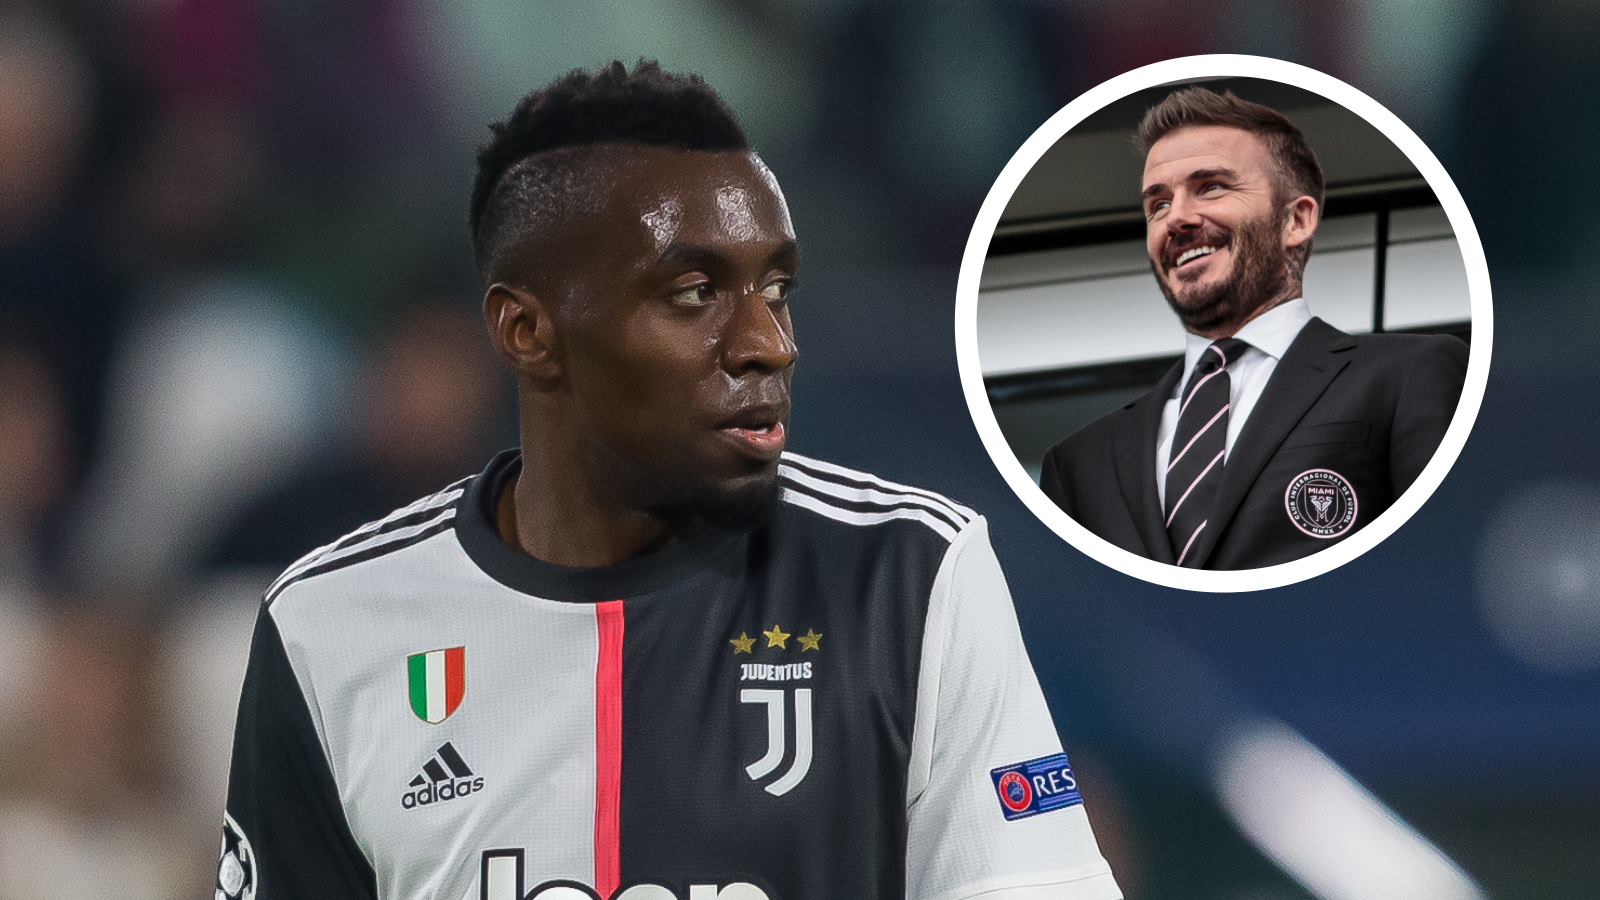 Matuidi first, James next? Beckham's big statement signings shows Inter  Miami is new MLS superclub | Goal.com